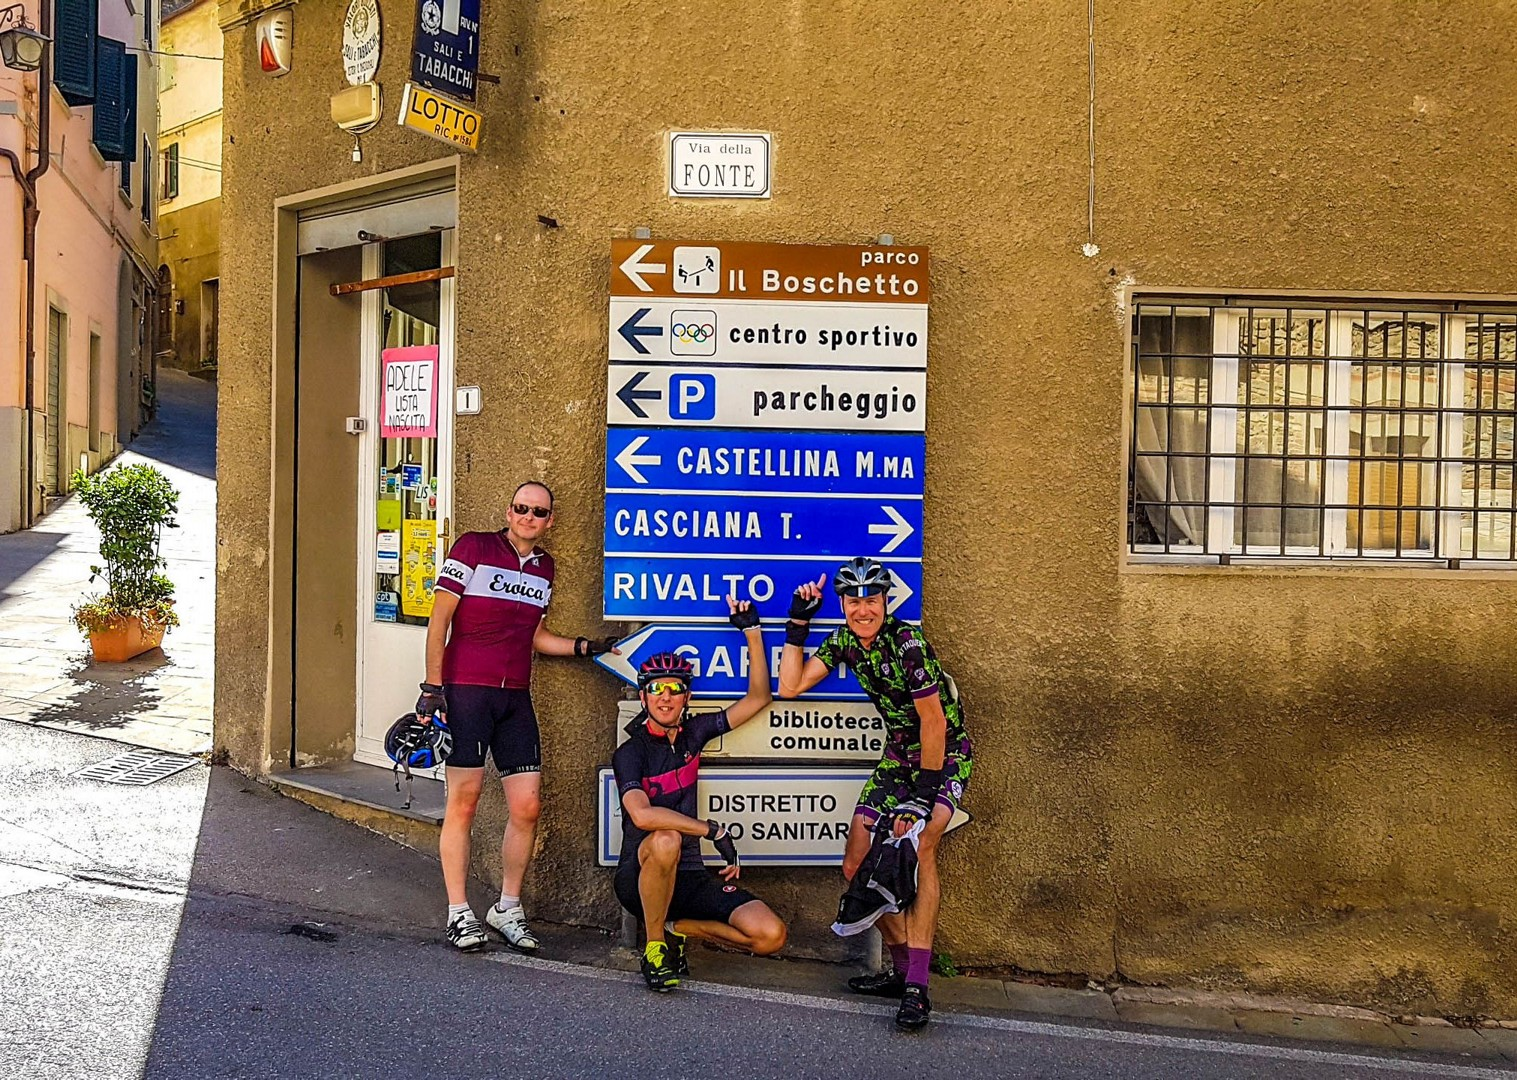 20170922_144954.jpg - Italy - Tuscany - Giro della Toscana - Guided Road Cycling Holiday - Road Cycling